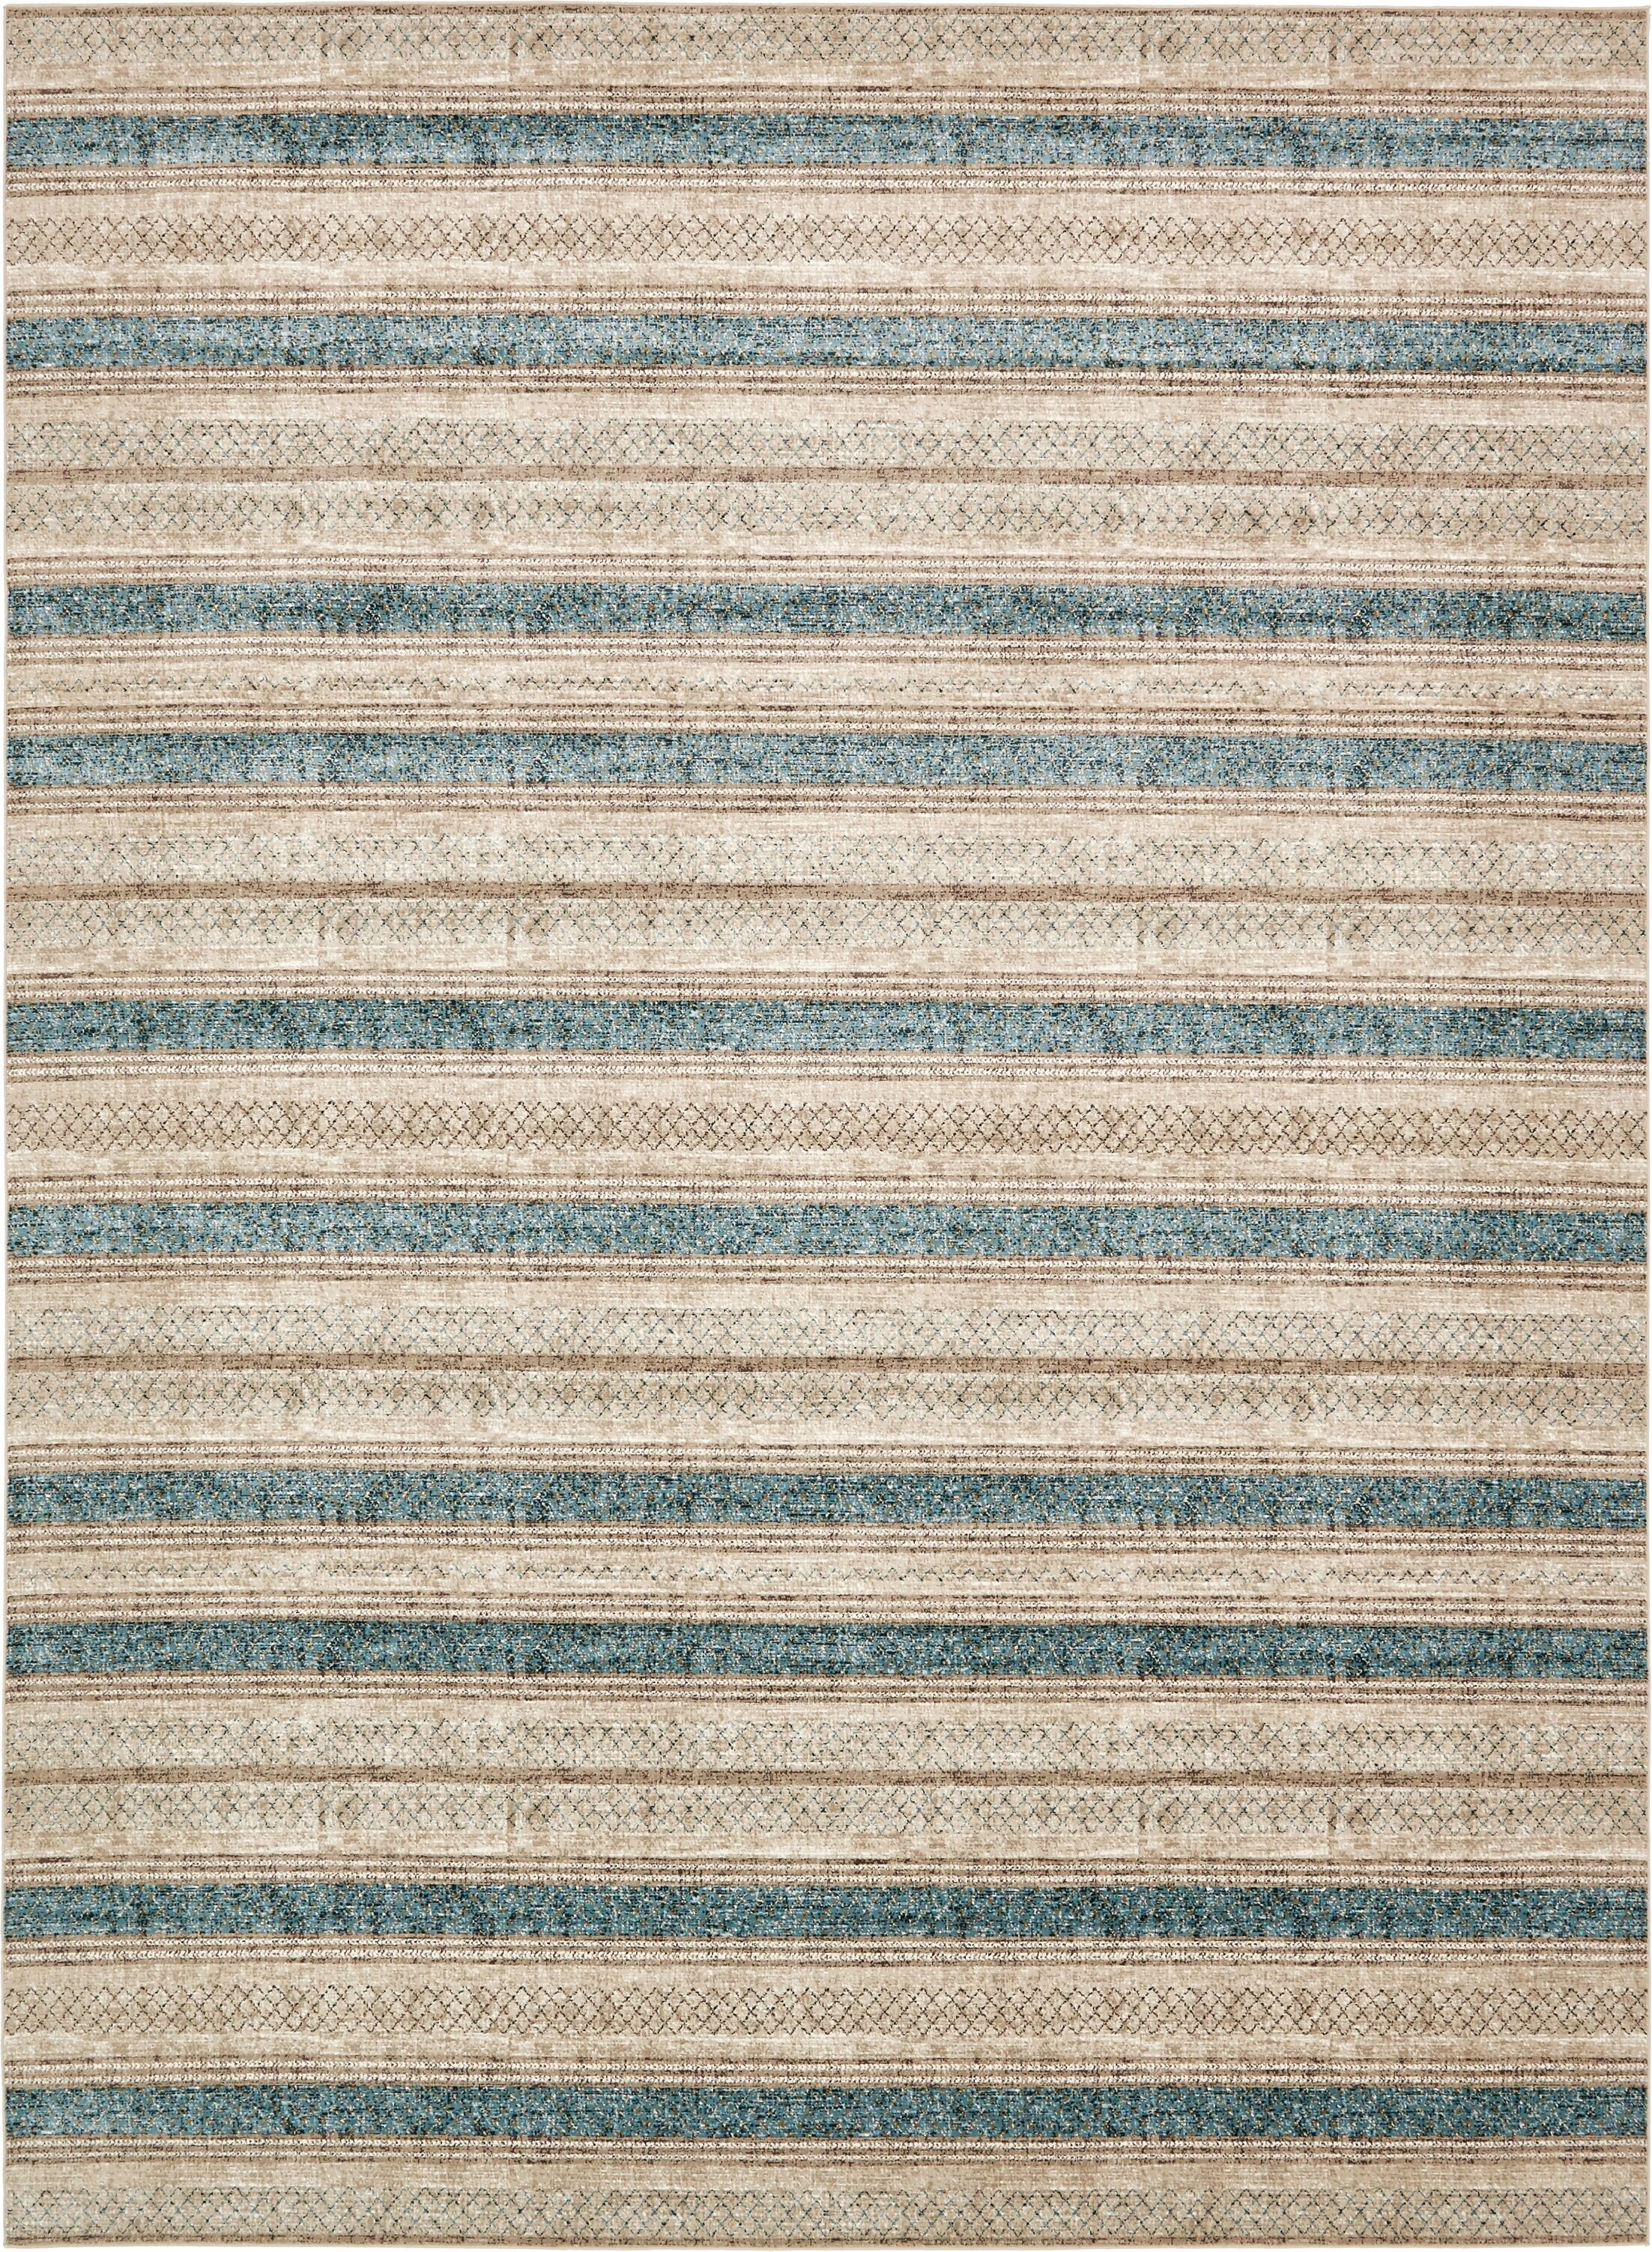 Brayden Beige/Blue Area Rug Rug Size: Rectangle 10' x 13'